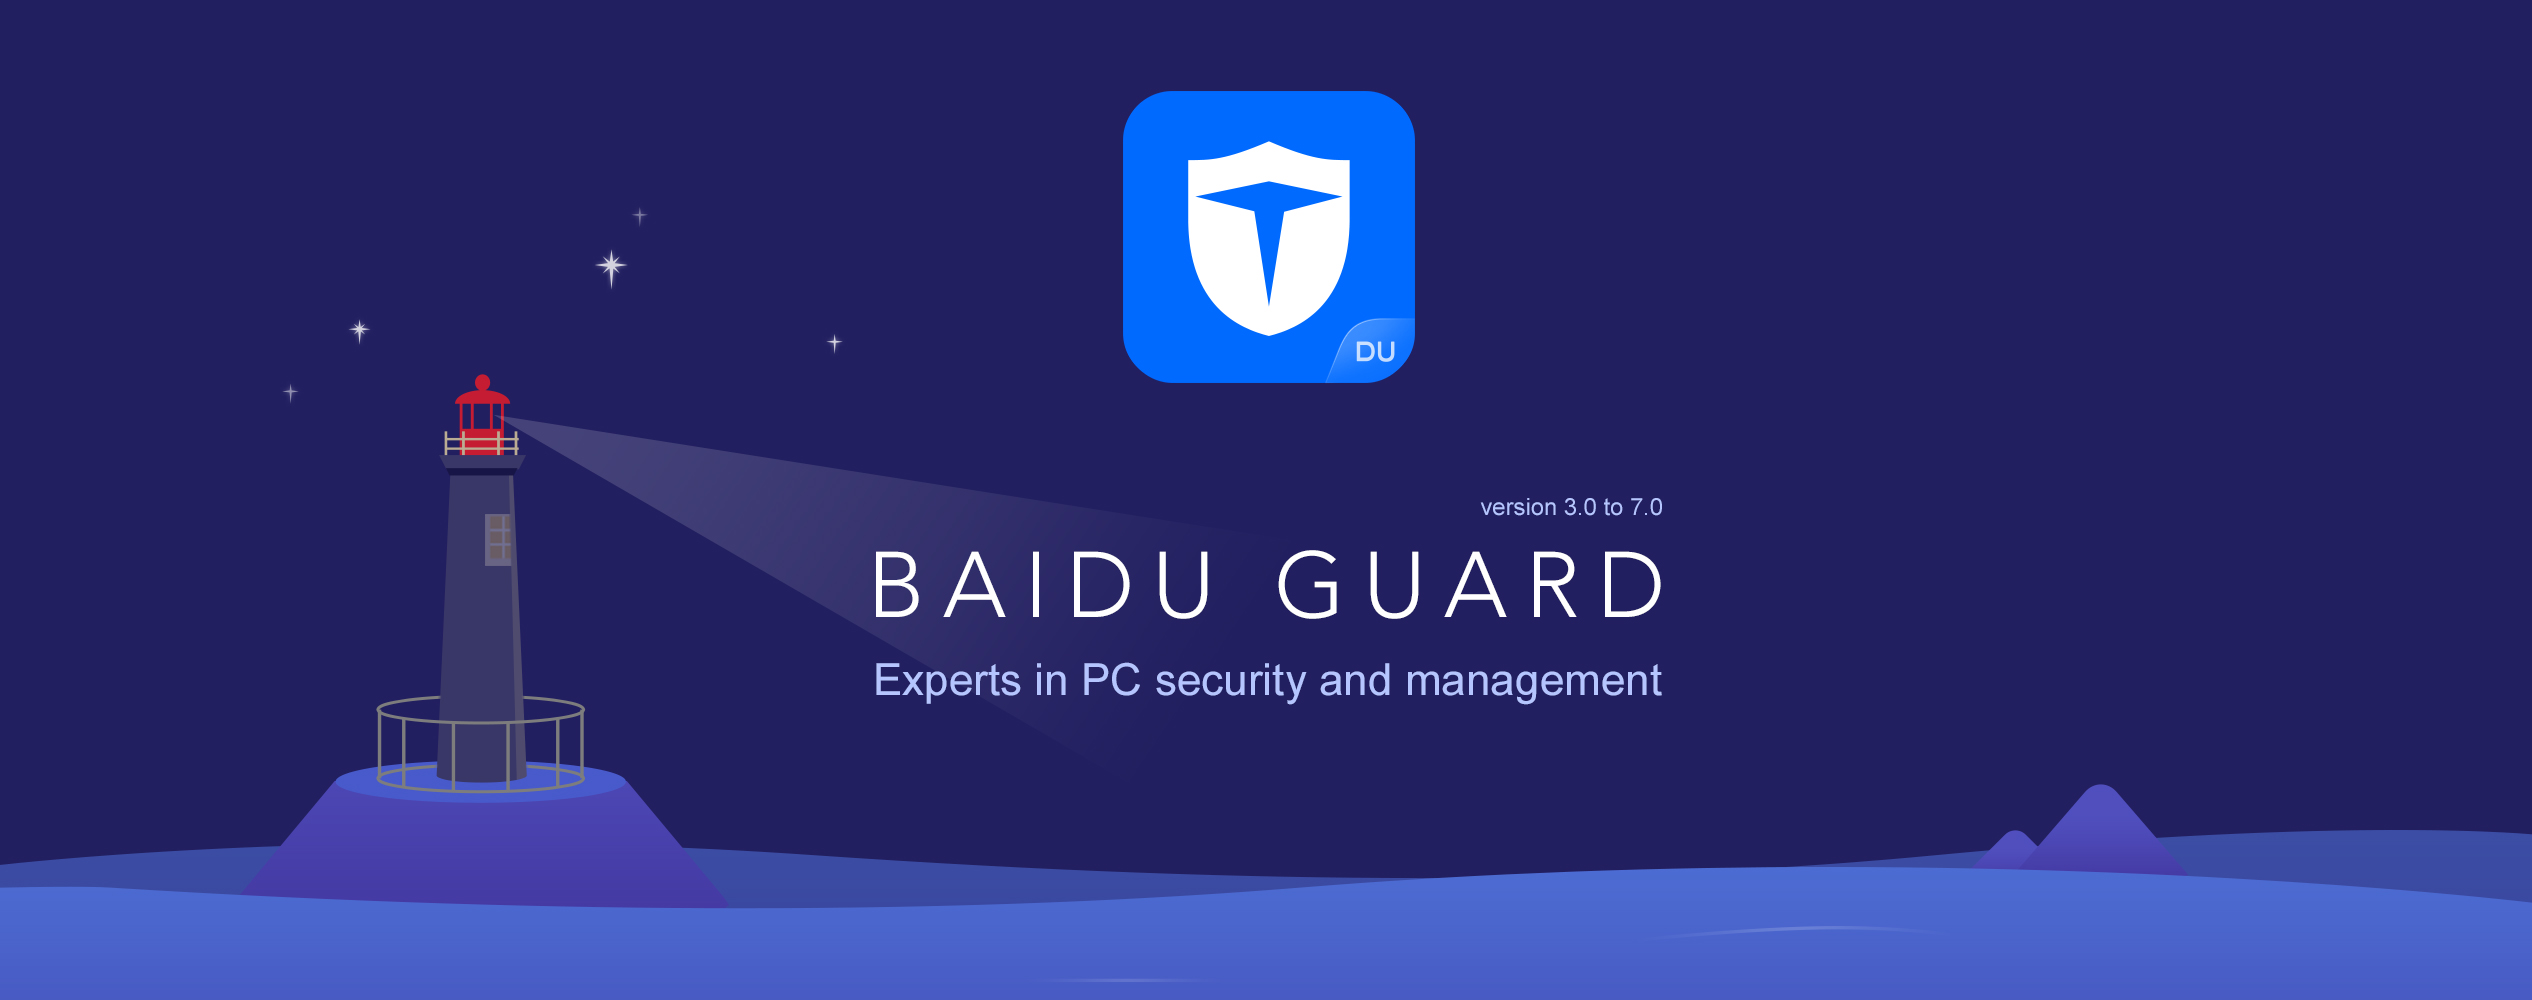 banner of baidu guard